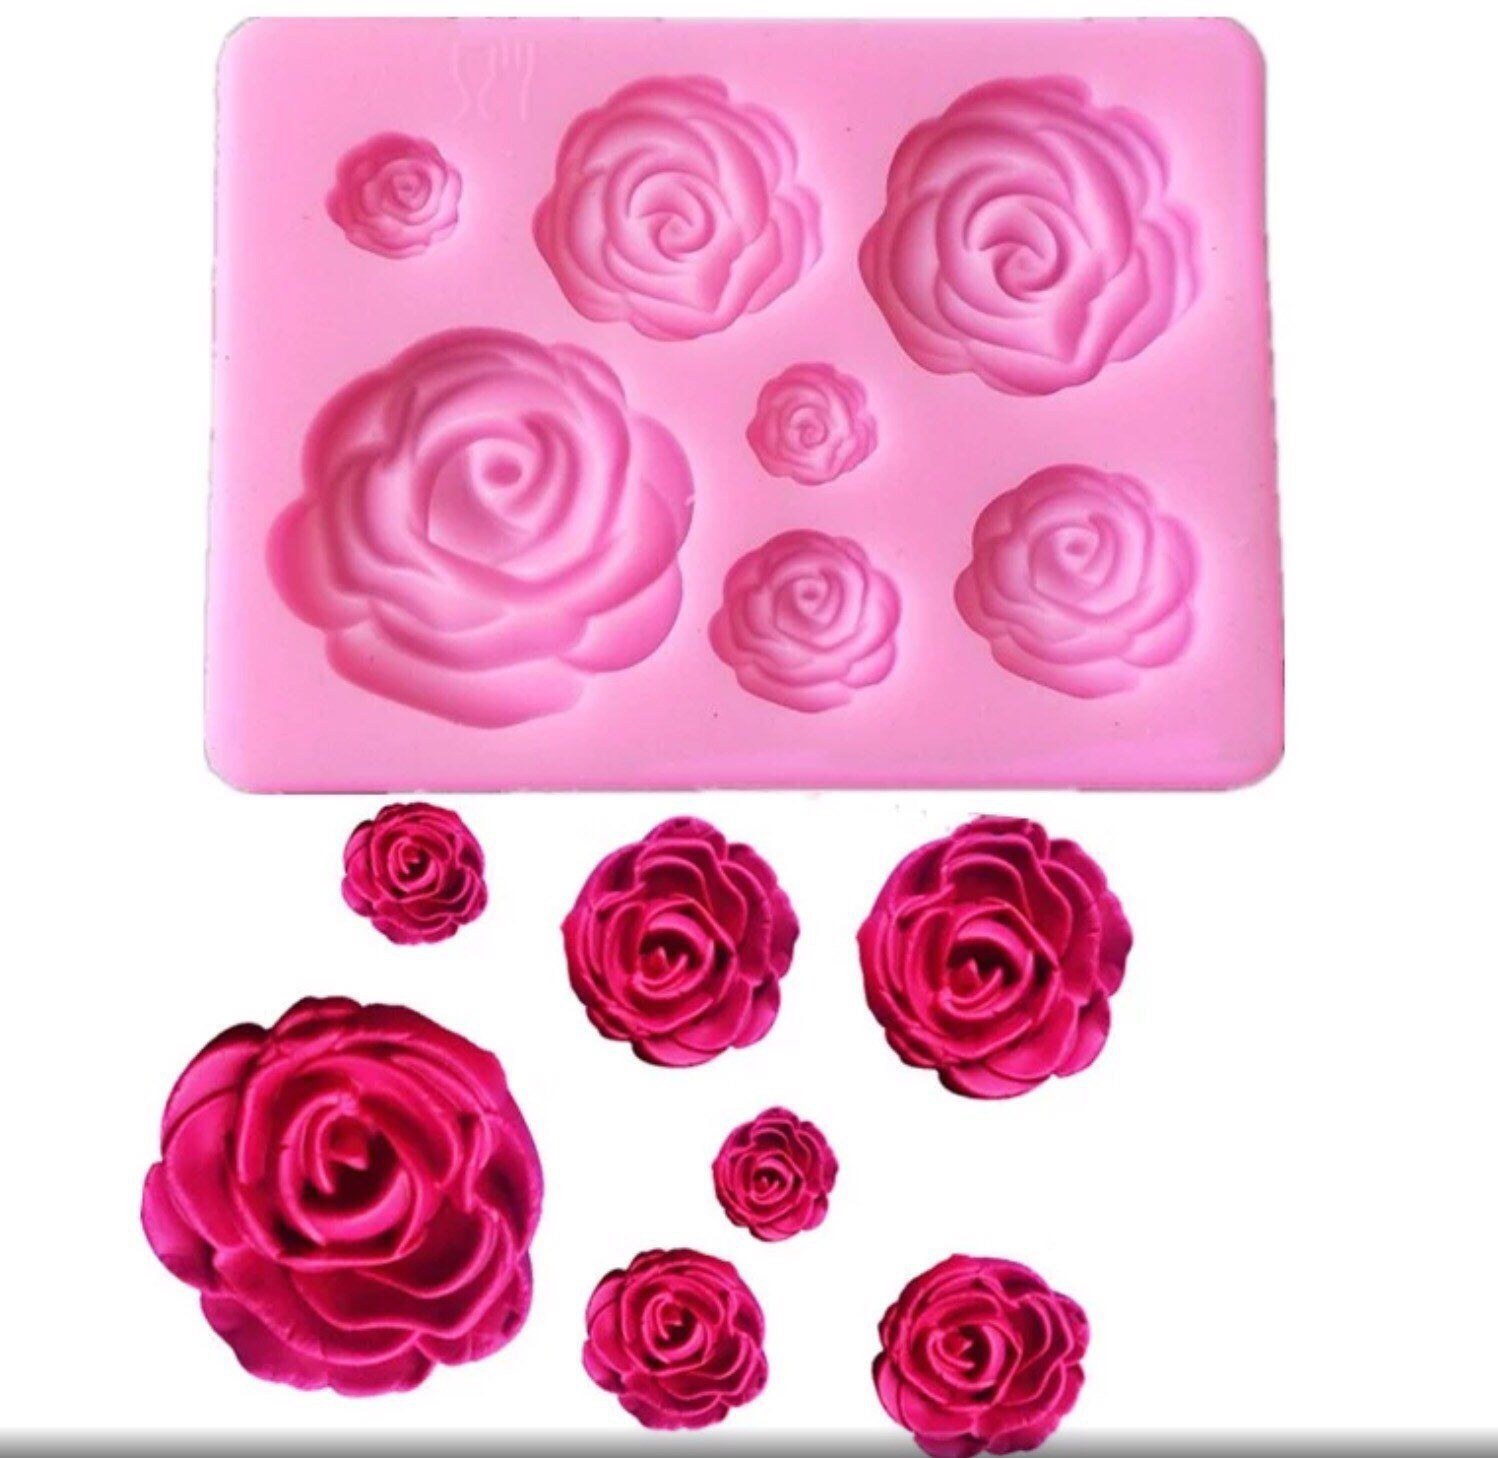 Roses Various Sizes Rose Flower Shaped Silicone Mould Fondant Etsy Silicone Molds Baking Cake Molds Silicone Cake Decorating Tools